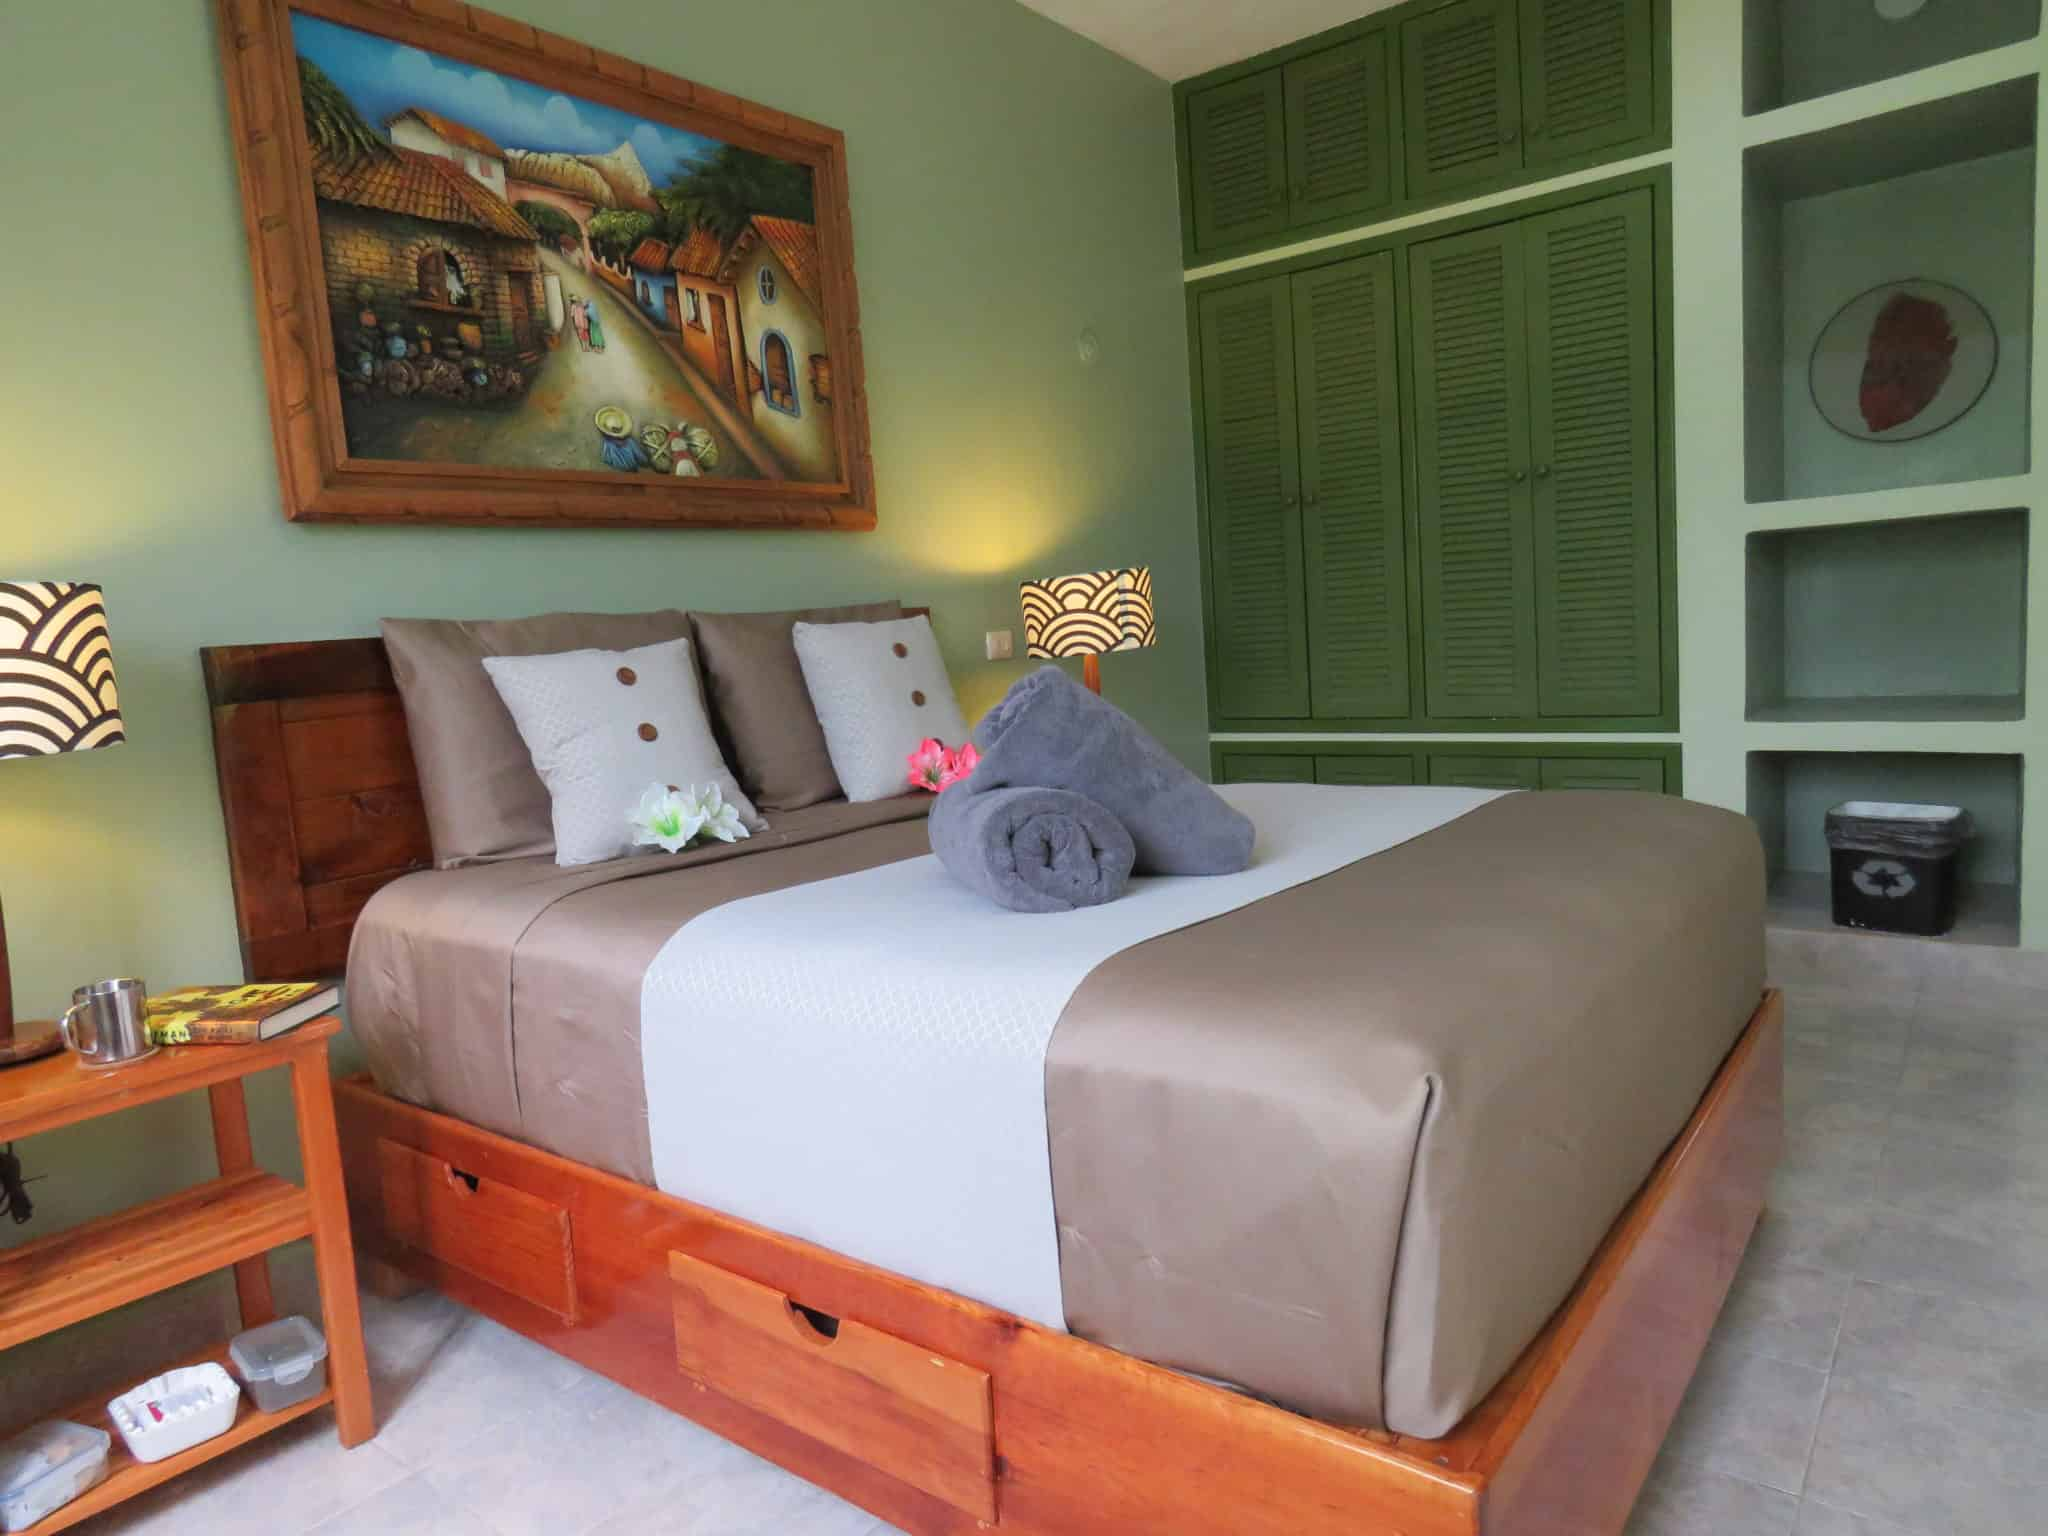 Luxury accommodations in the bedroom area, vacation rental condo in Cozumel, Mexico